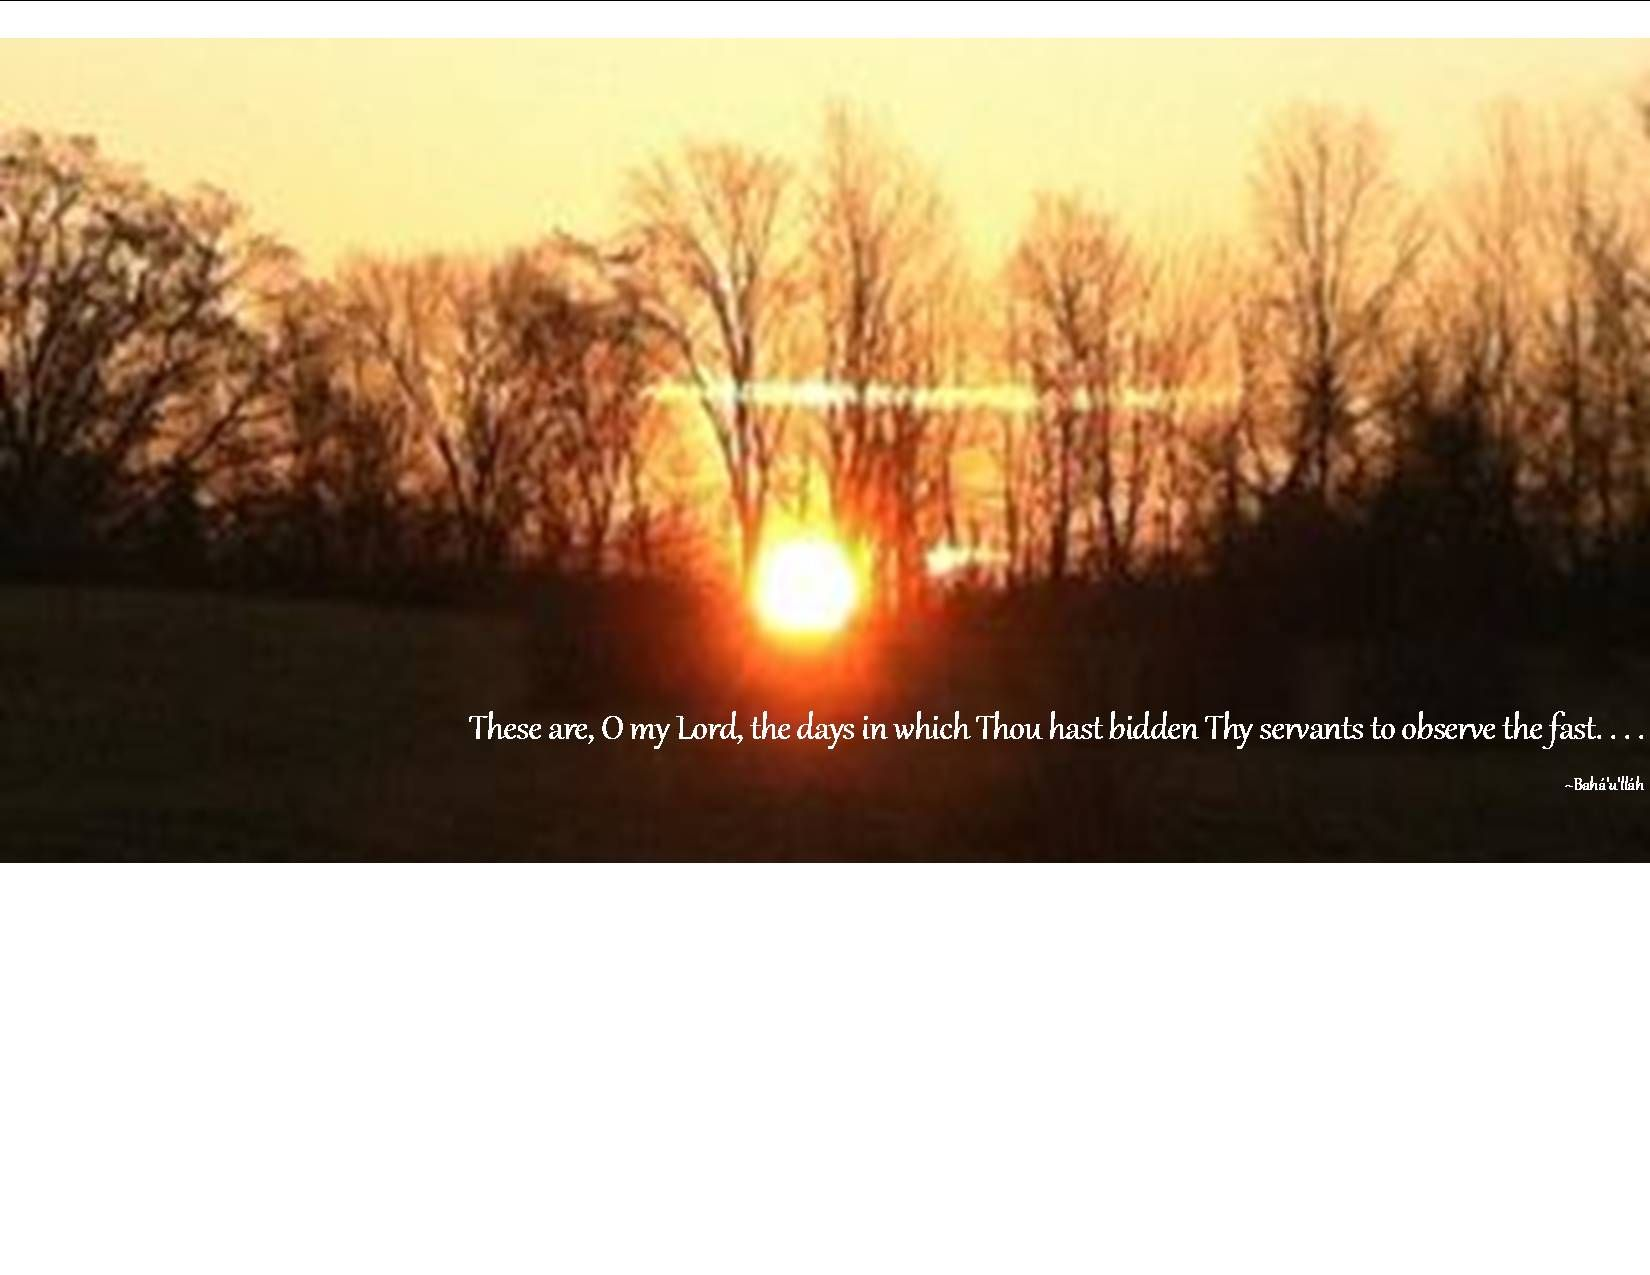 Sunrise @ Louhelen Bahá'í School is the background for my FB Cover pic for The Fast.